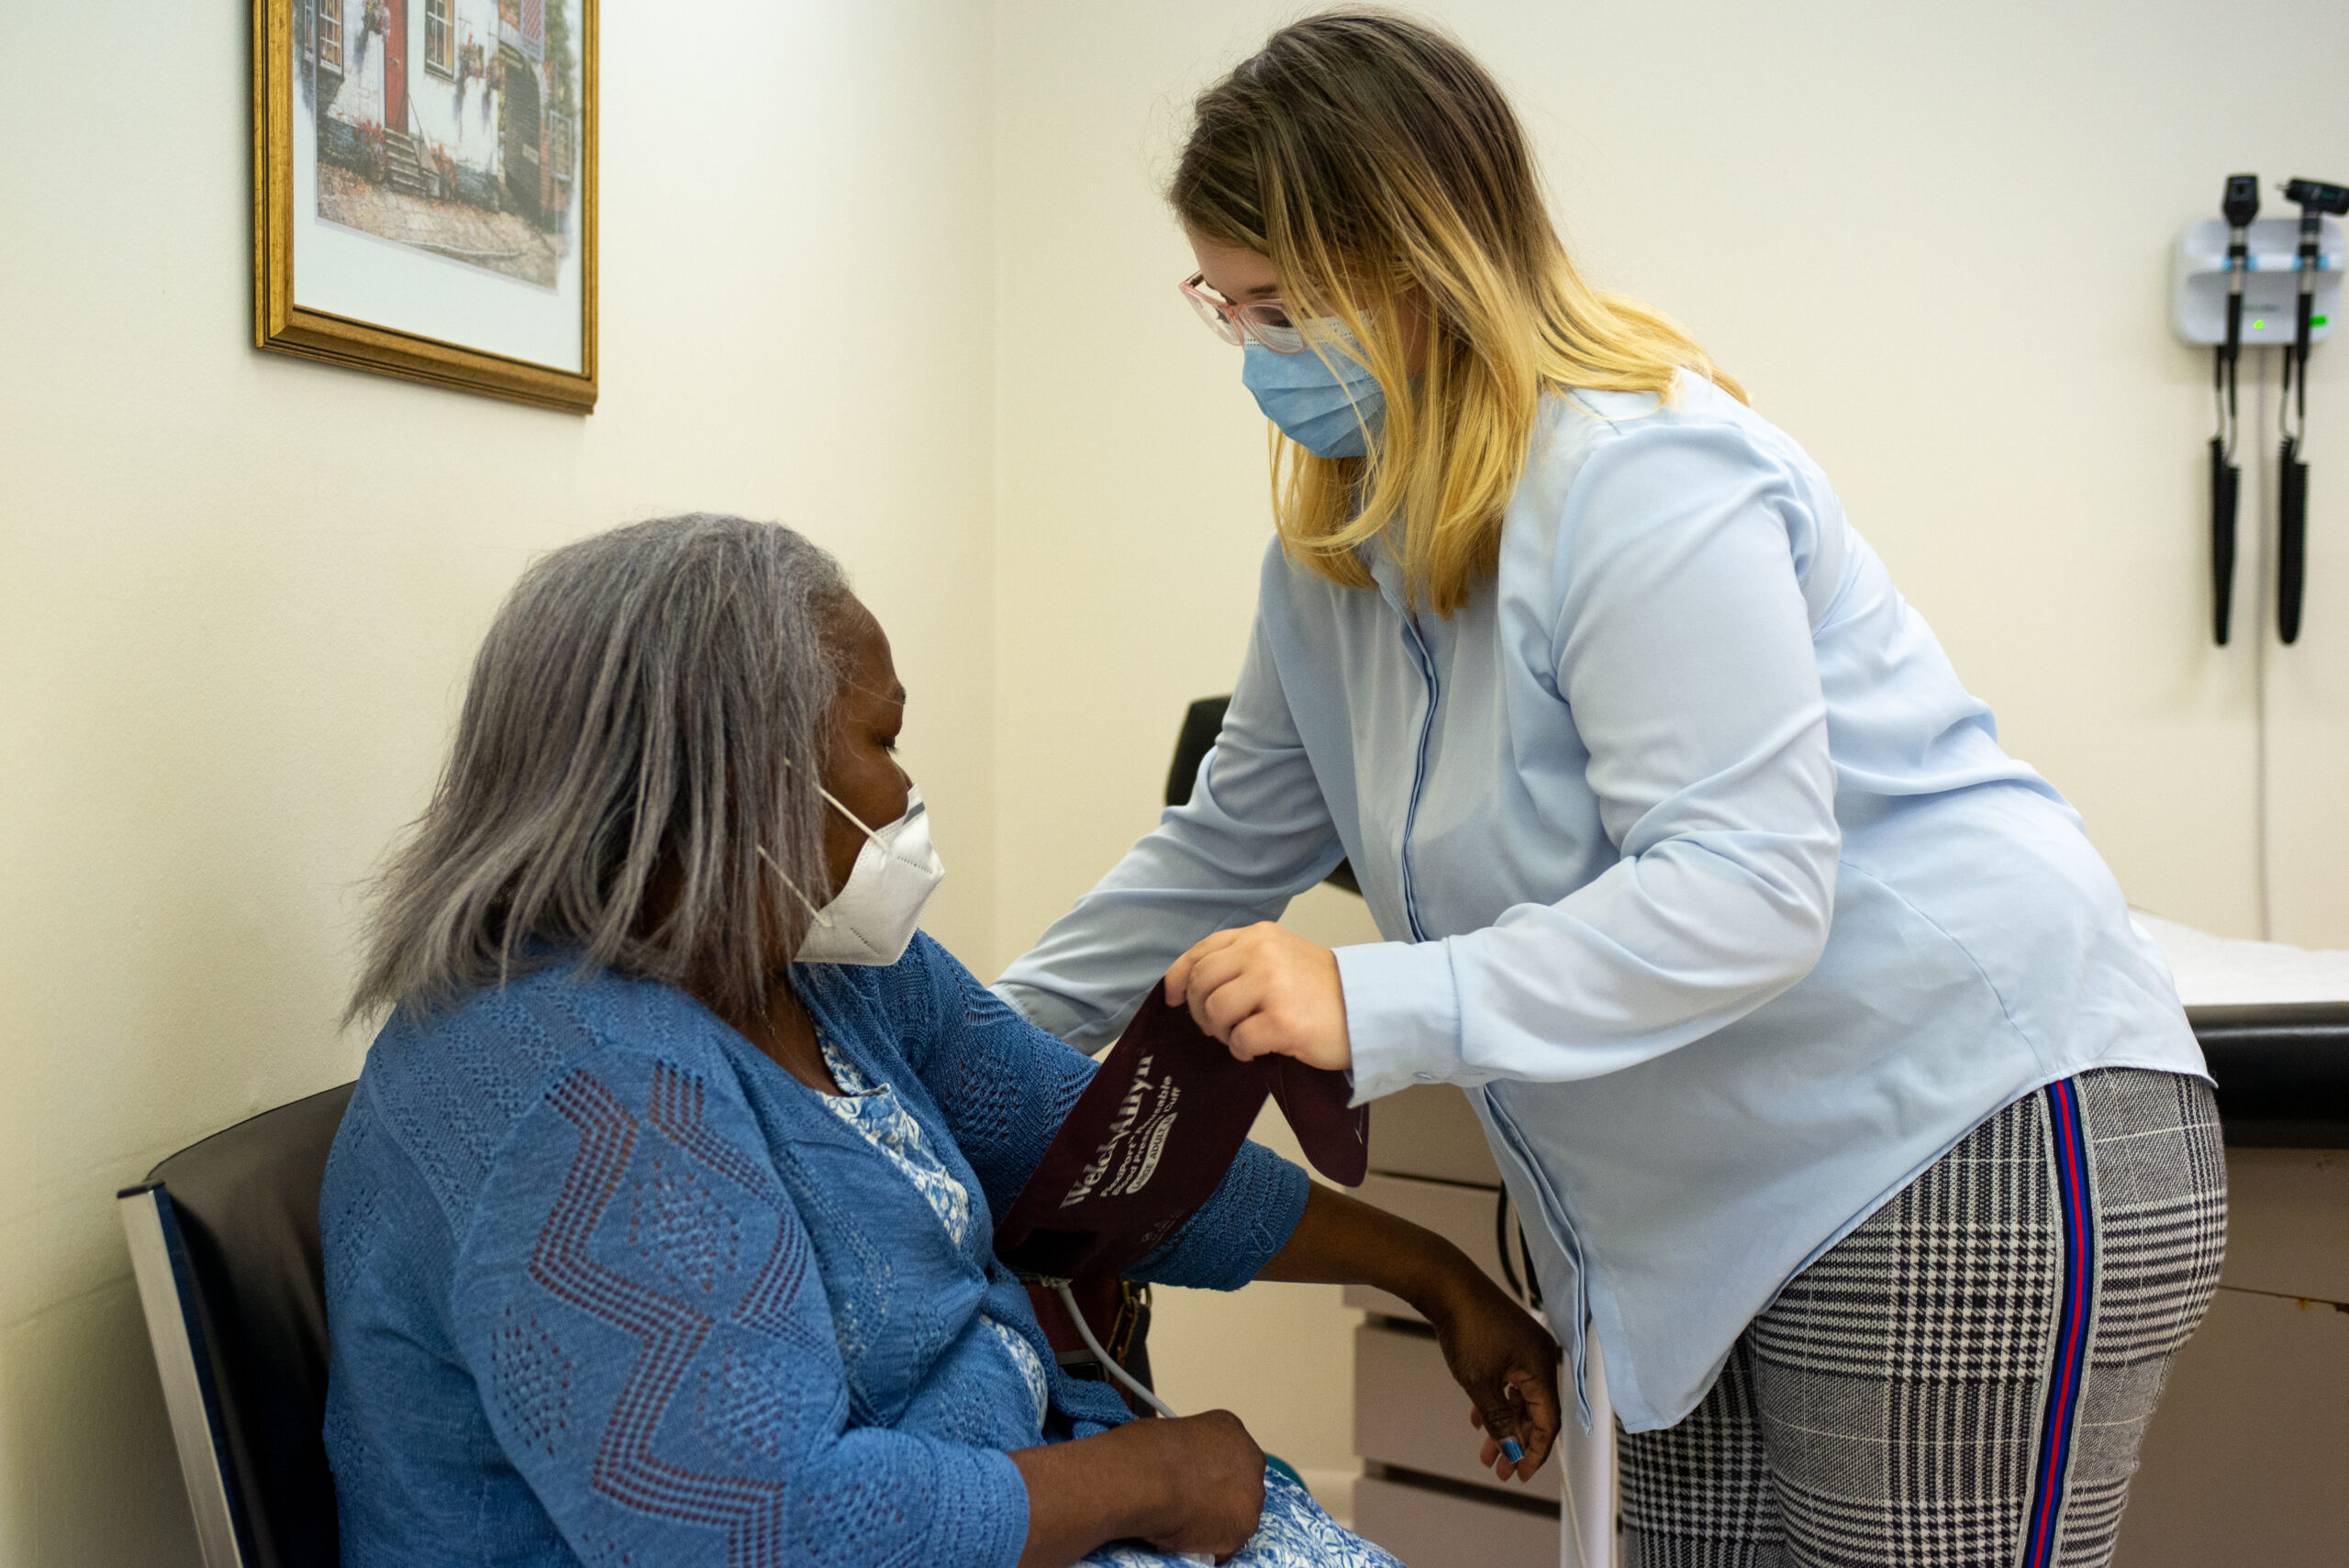 Free Clinic of Meridian staff member, Desiree Wilson, assists A Healthier You Meridian program participant, Deborah Ramsey, get checked in and takes her vital signs during a regularly scheduled appointment. Meridian, MS Tues, Nov. 24, 2020 (Photo By Revere Photography for Direct Relief)